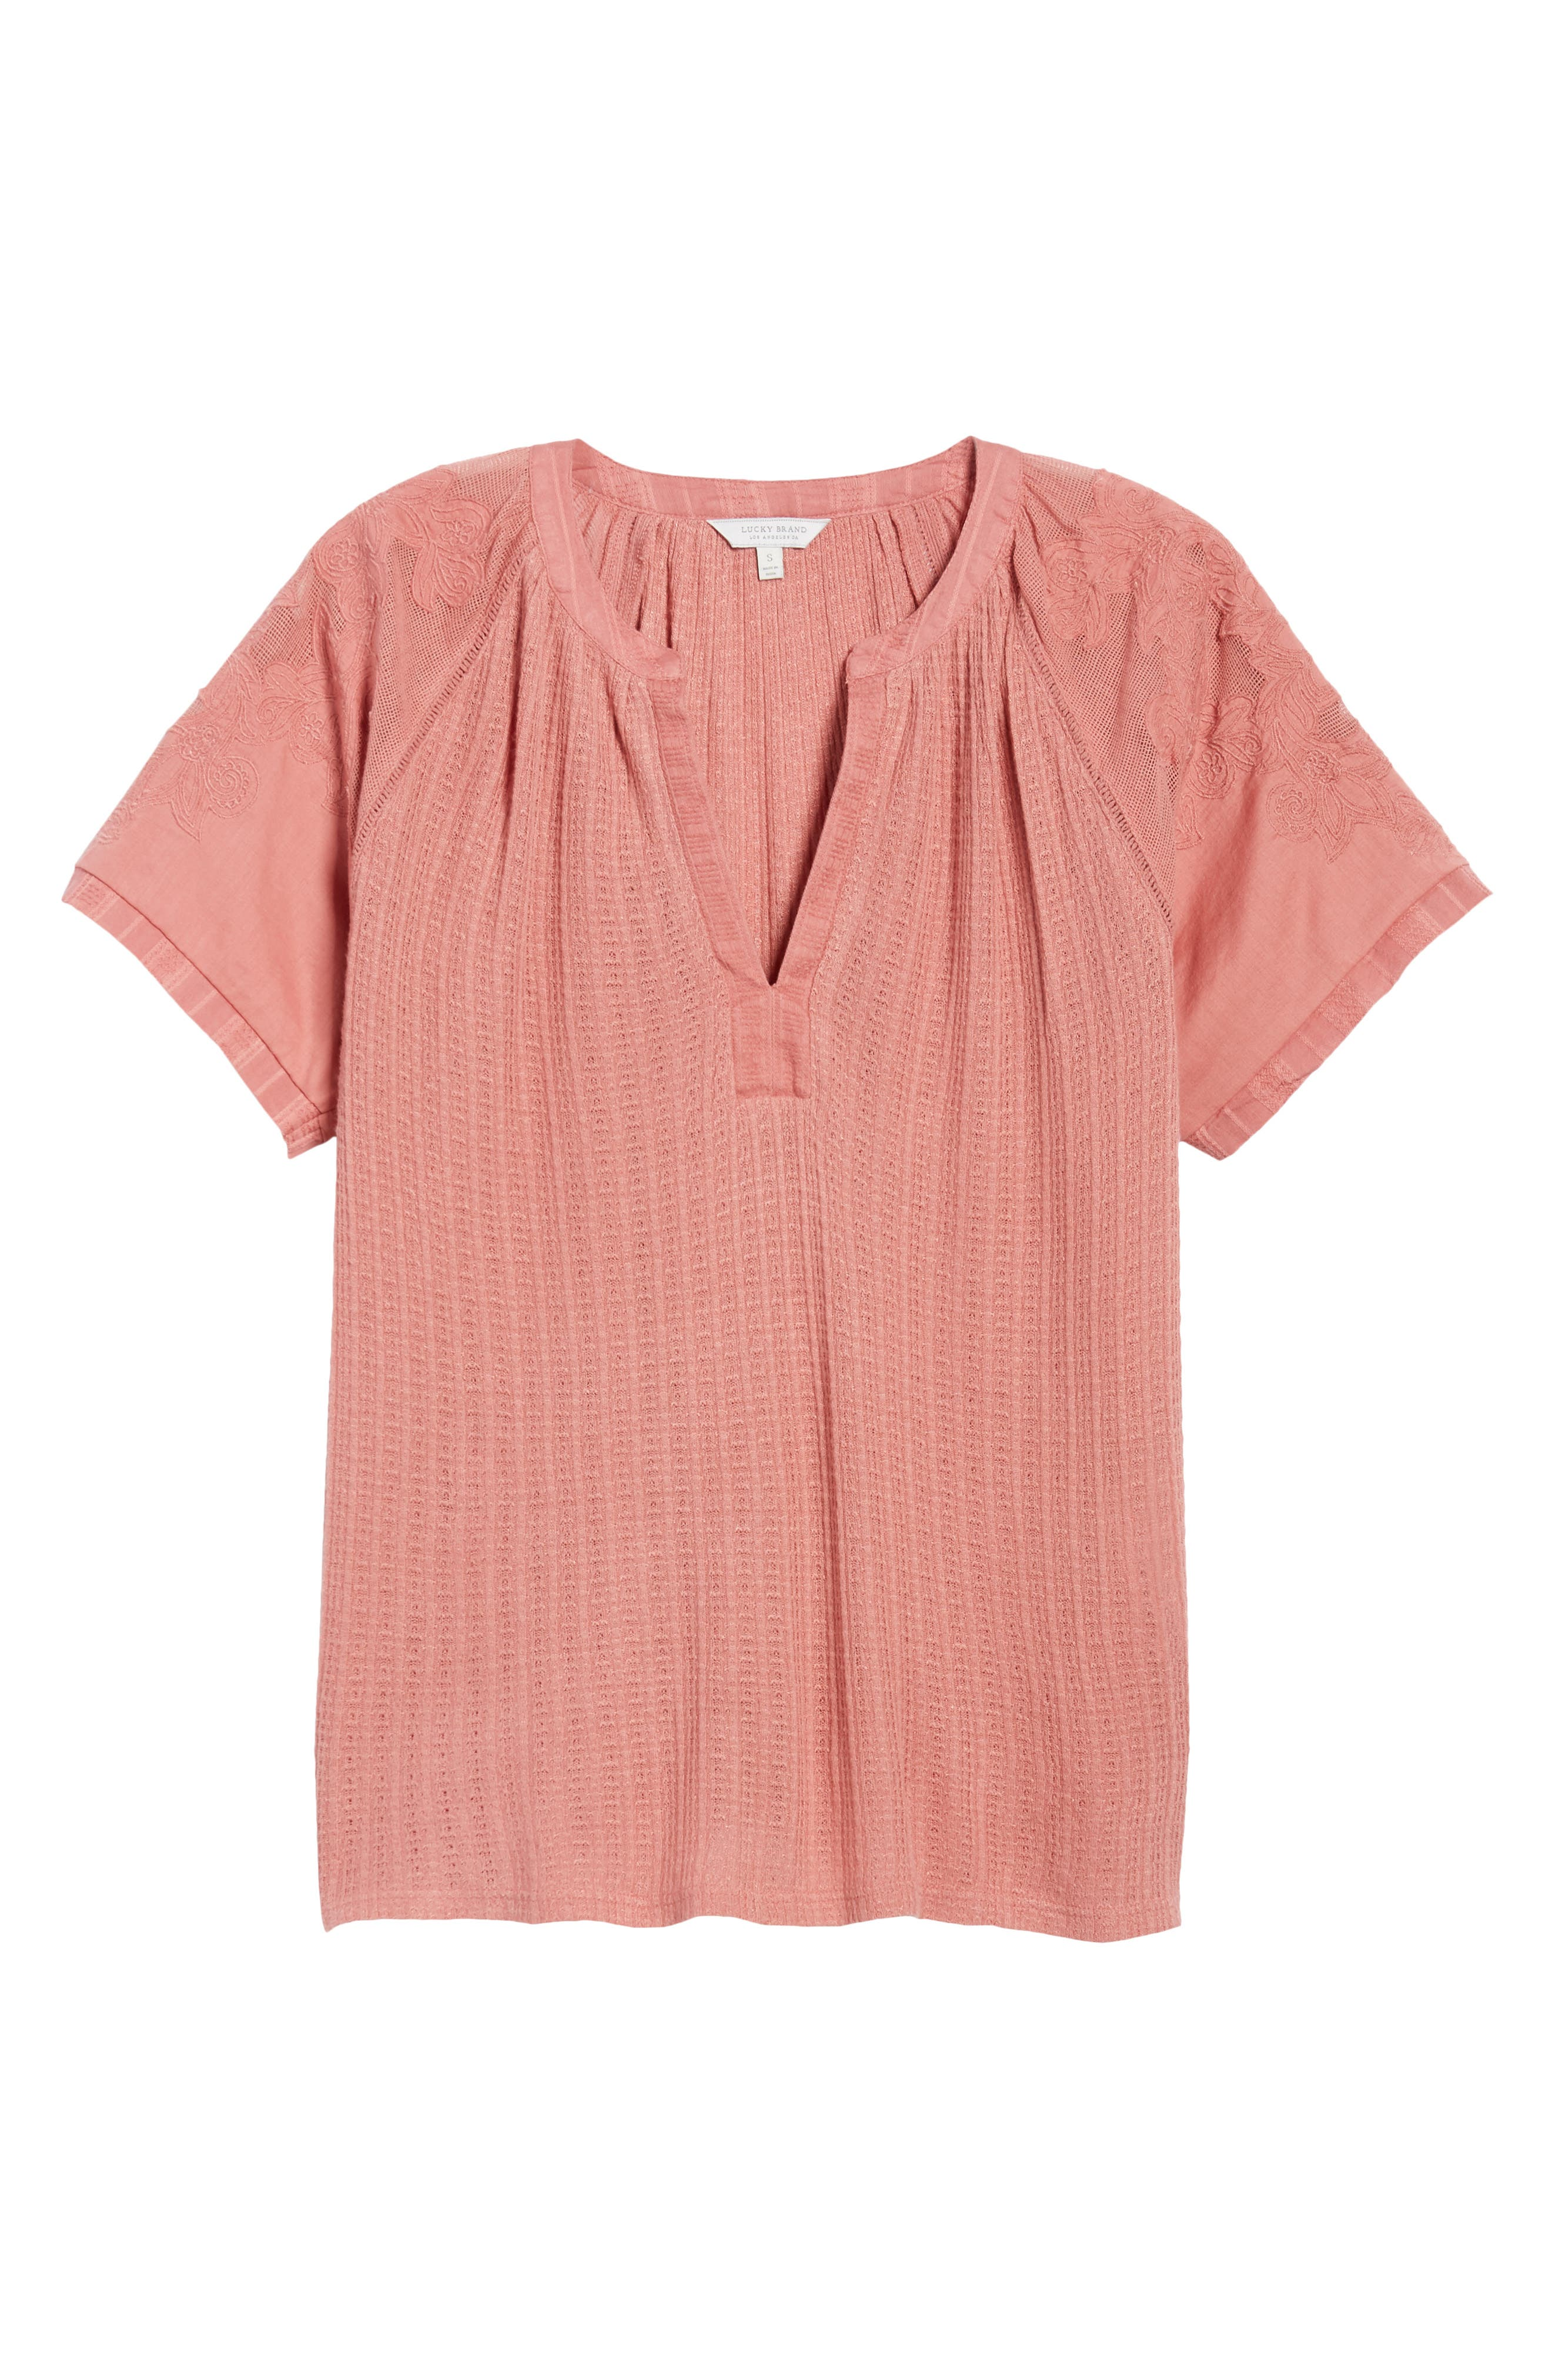 Floral Sleeve Top,                             Alternate thumbnail 2, color,                             Rose